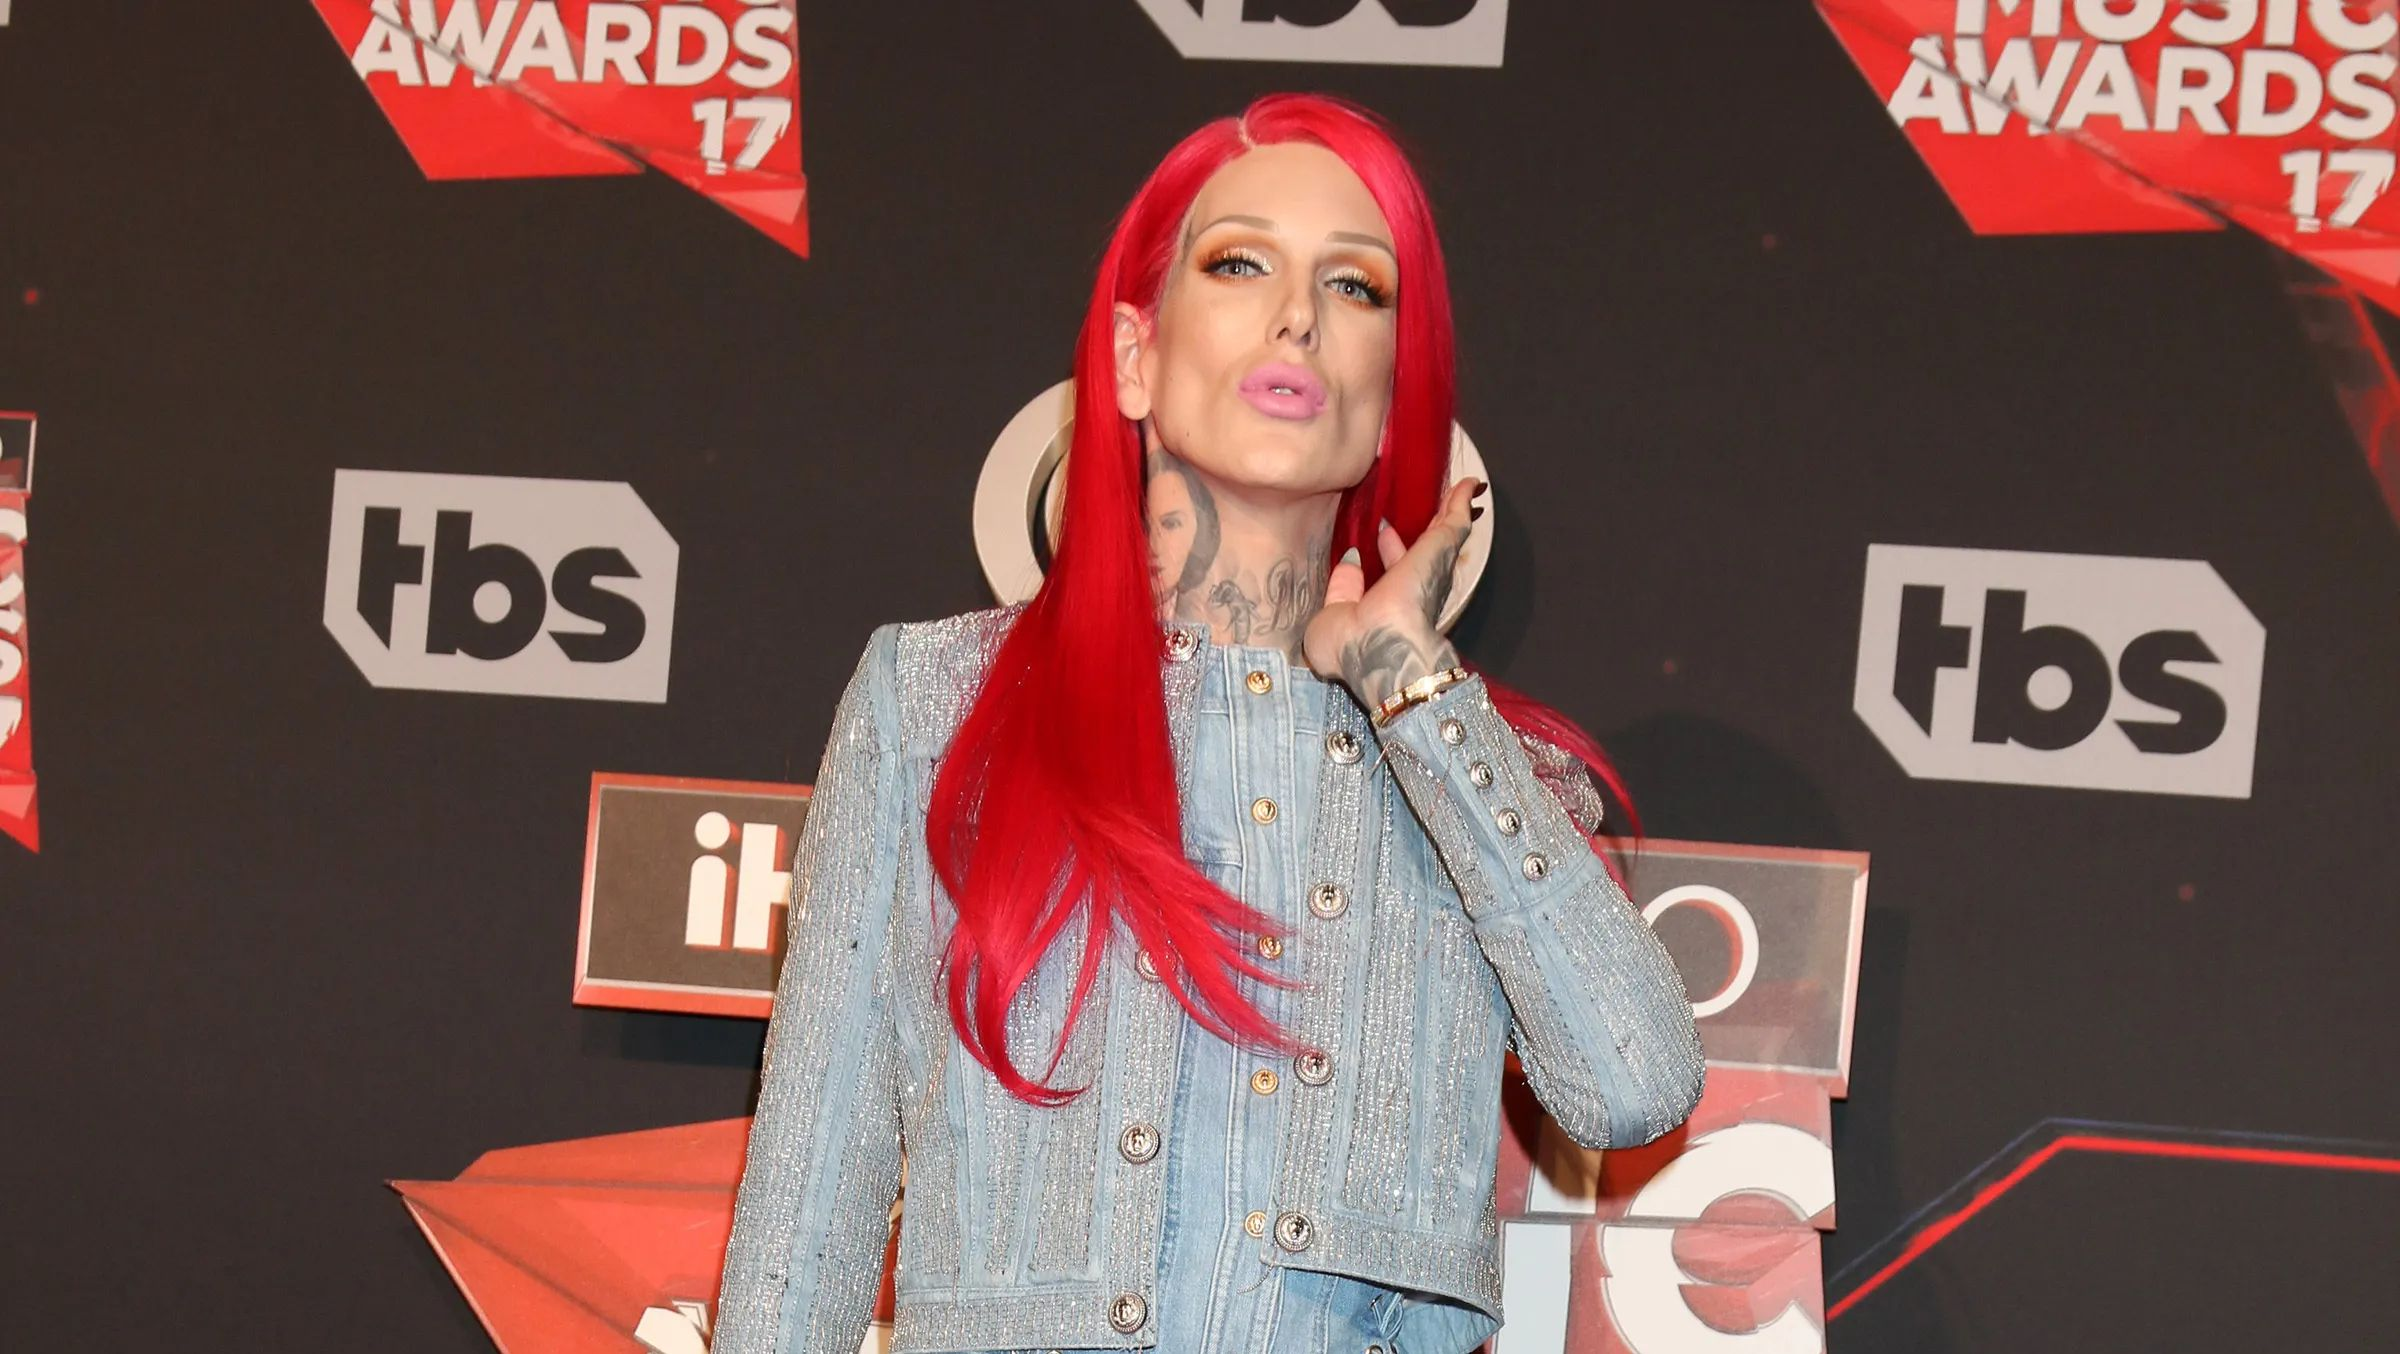 Jeffree Star with red hair